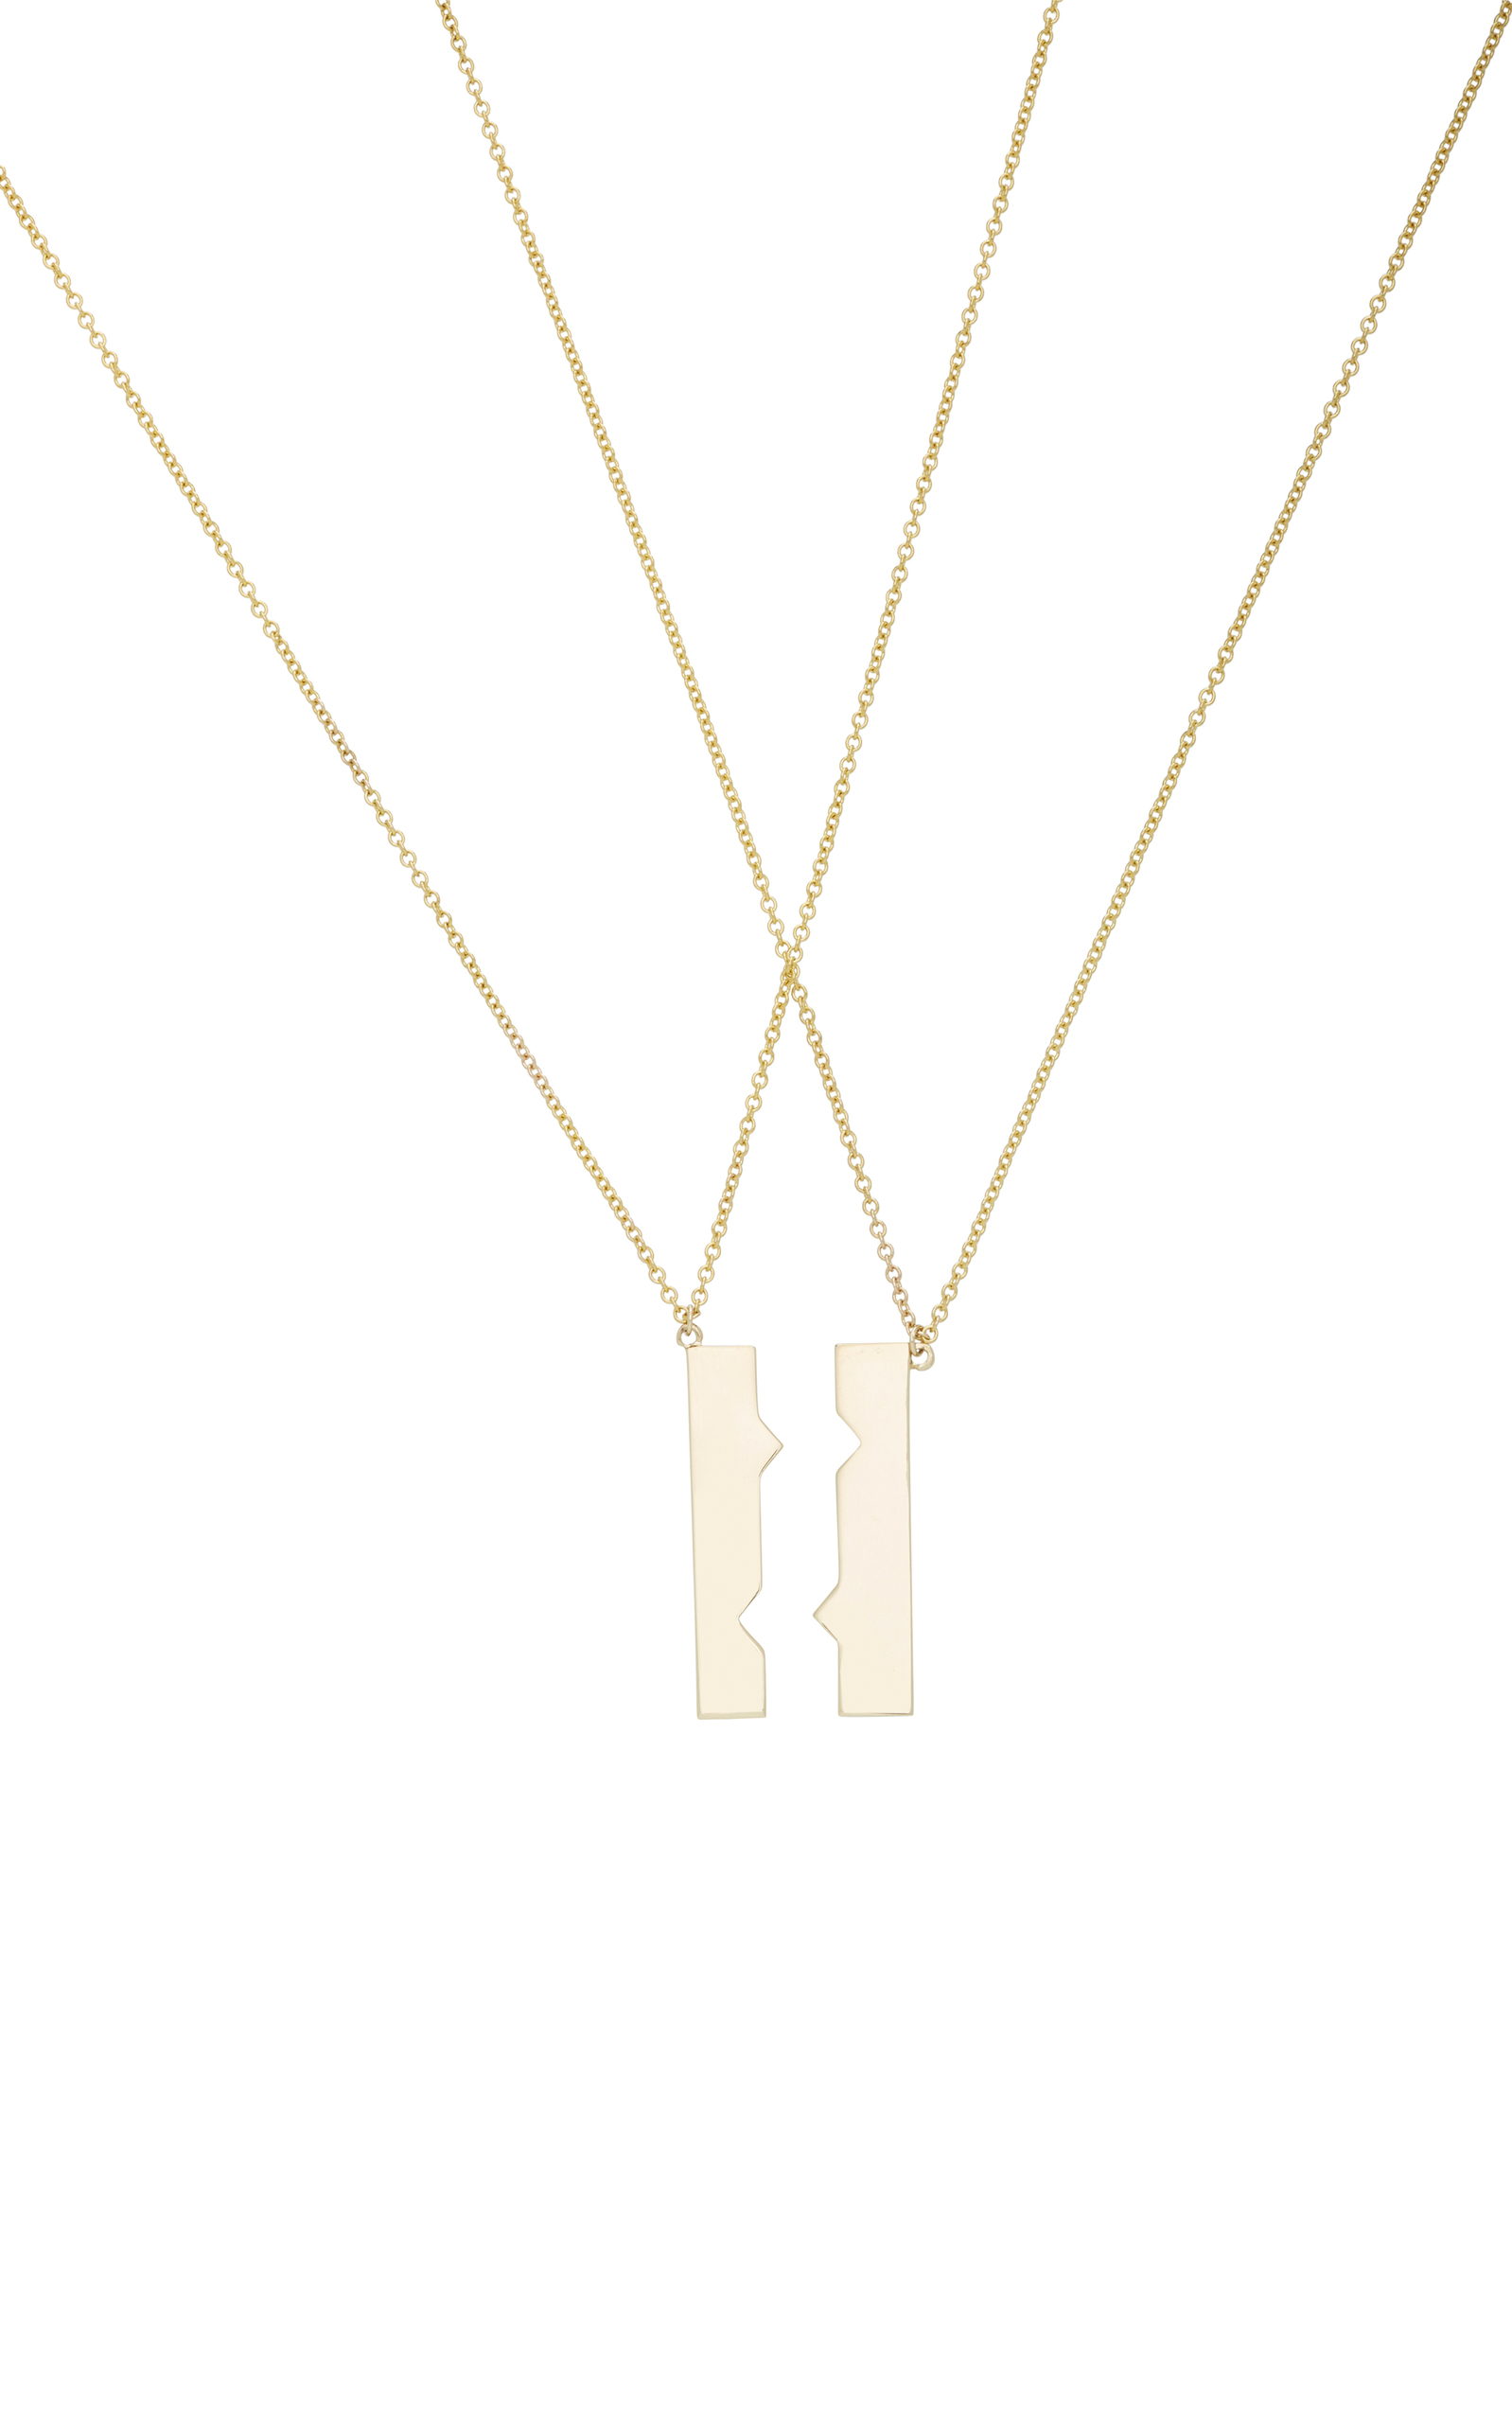 chains spiga pin necklace gold chain yellow men